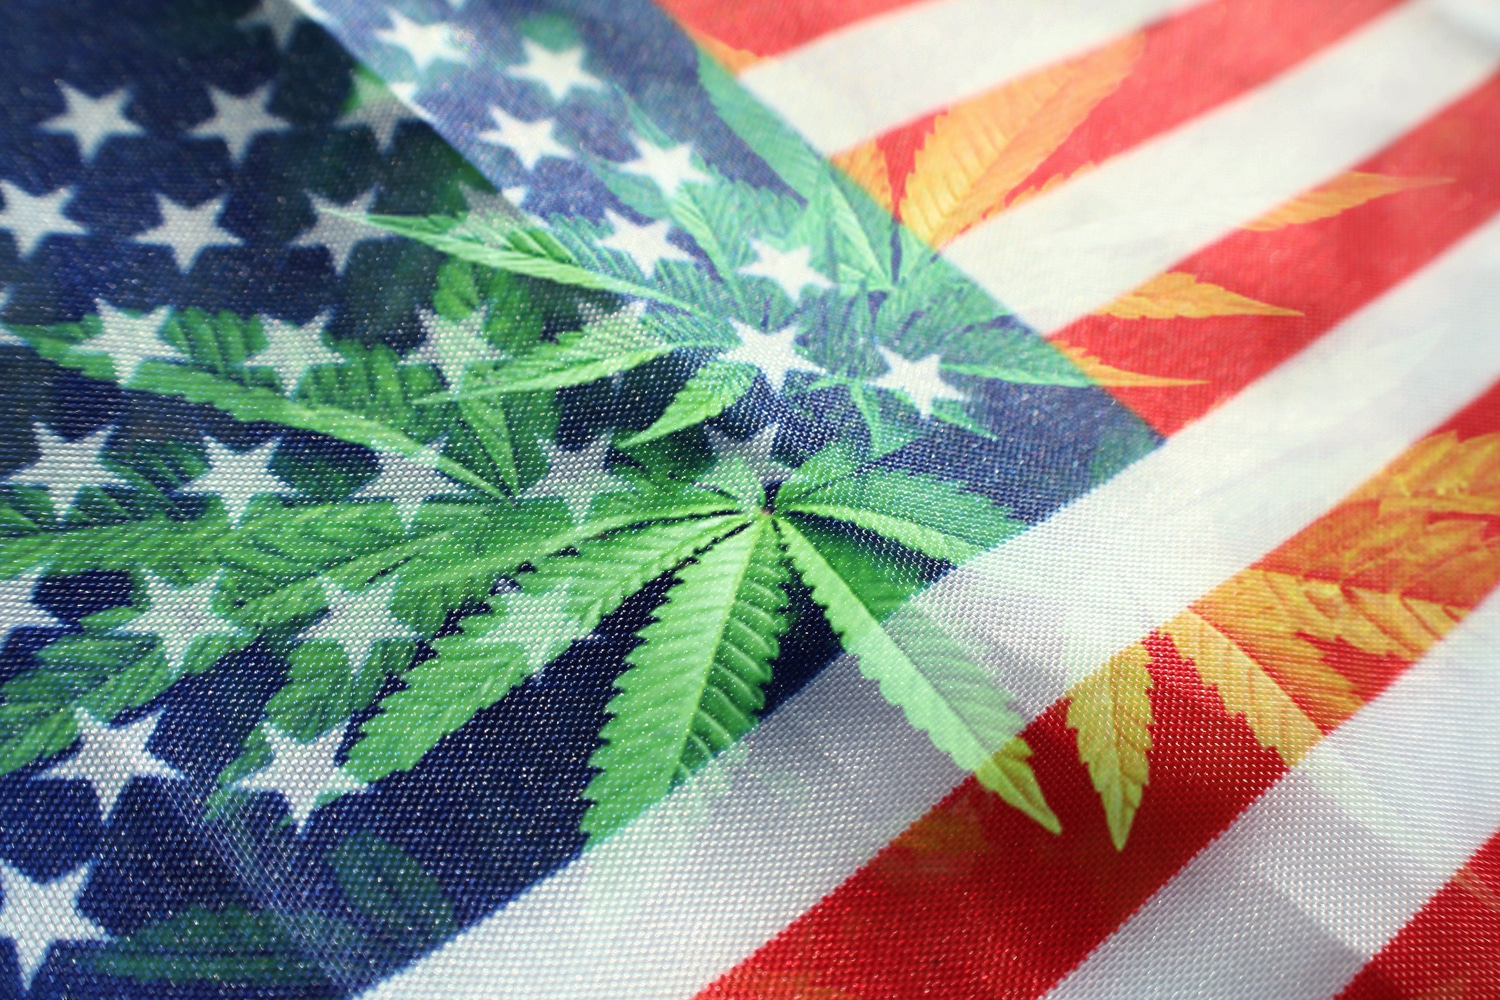 pot leaf in front of american flag